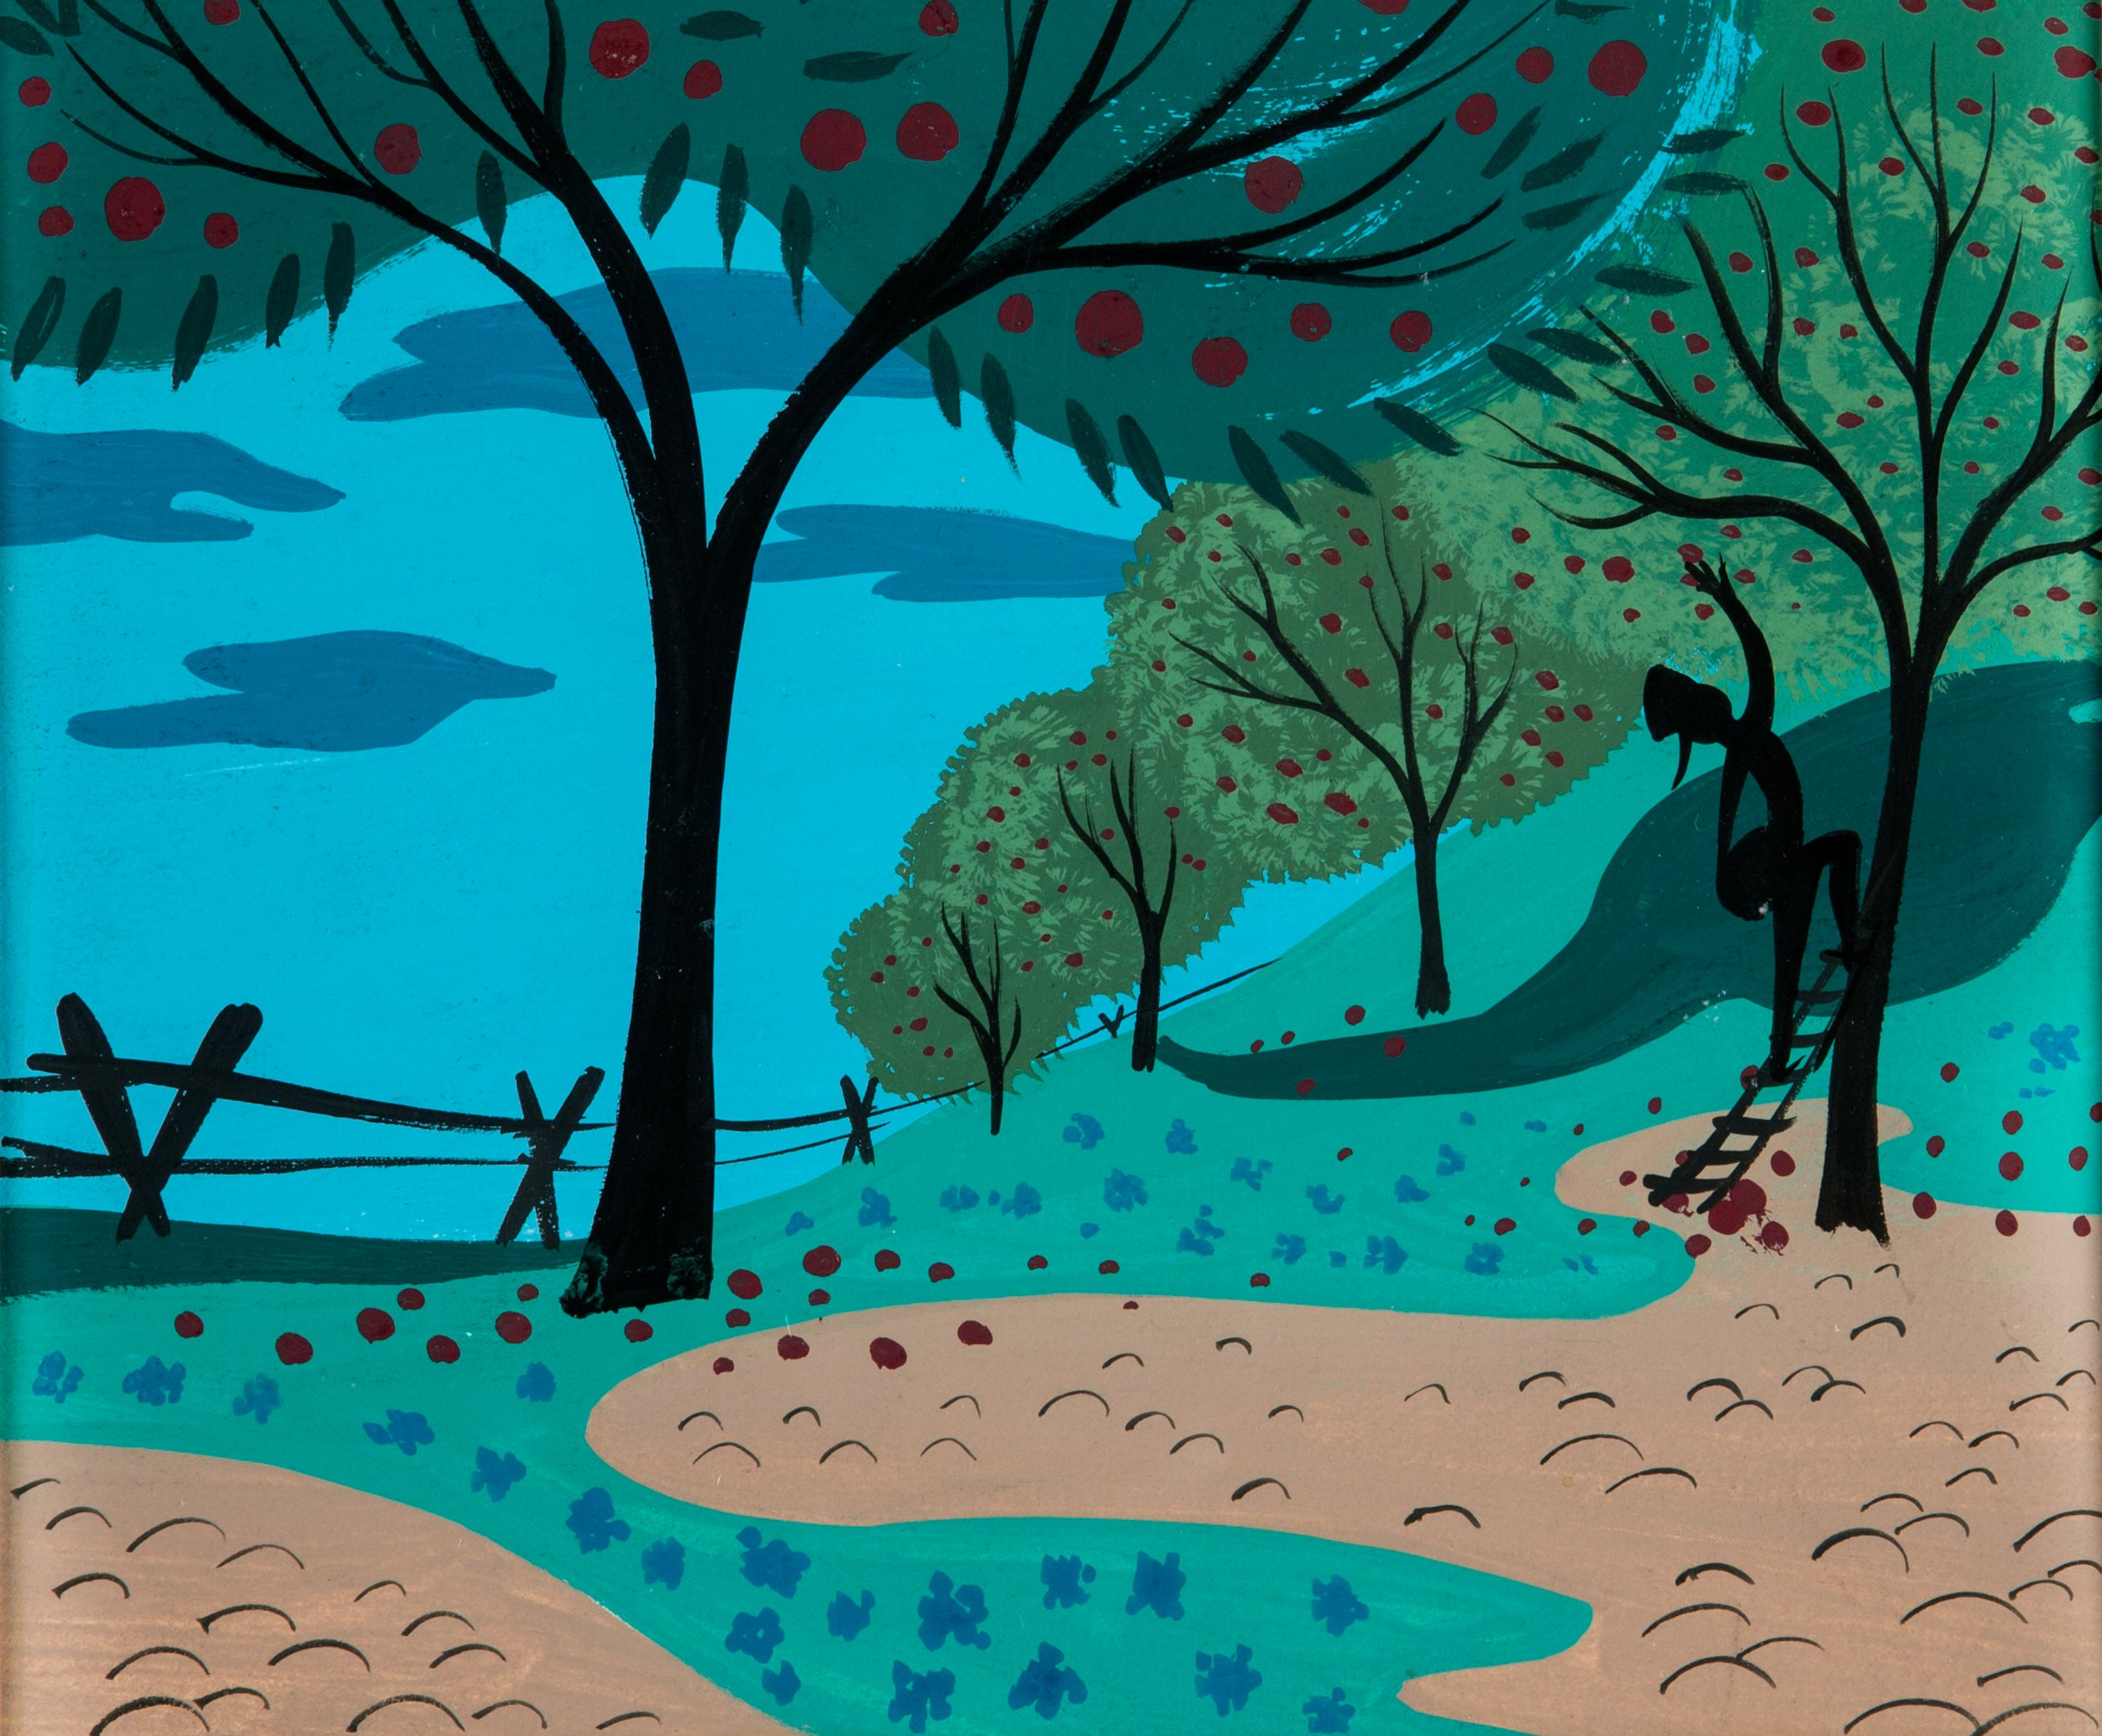 Mary Blair Melody Time Johnny Appleseed Concept Art Walt Disney Lot 95036 Heritage Auctions